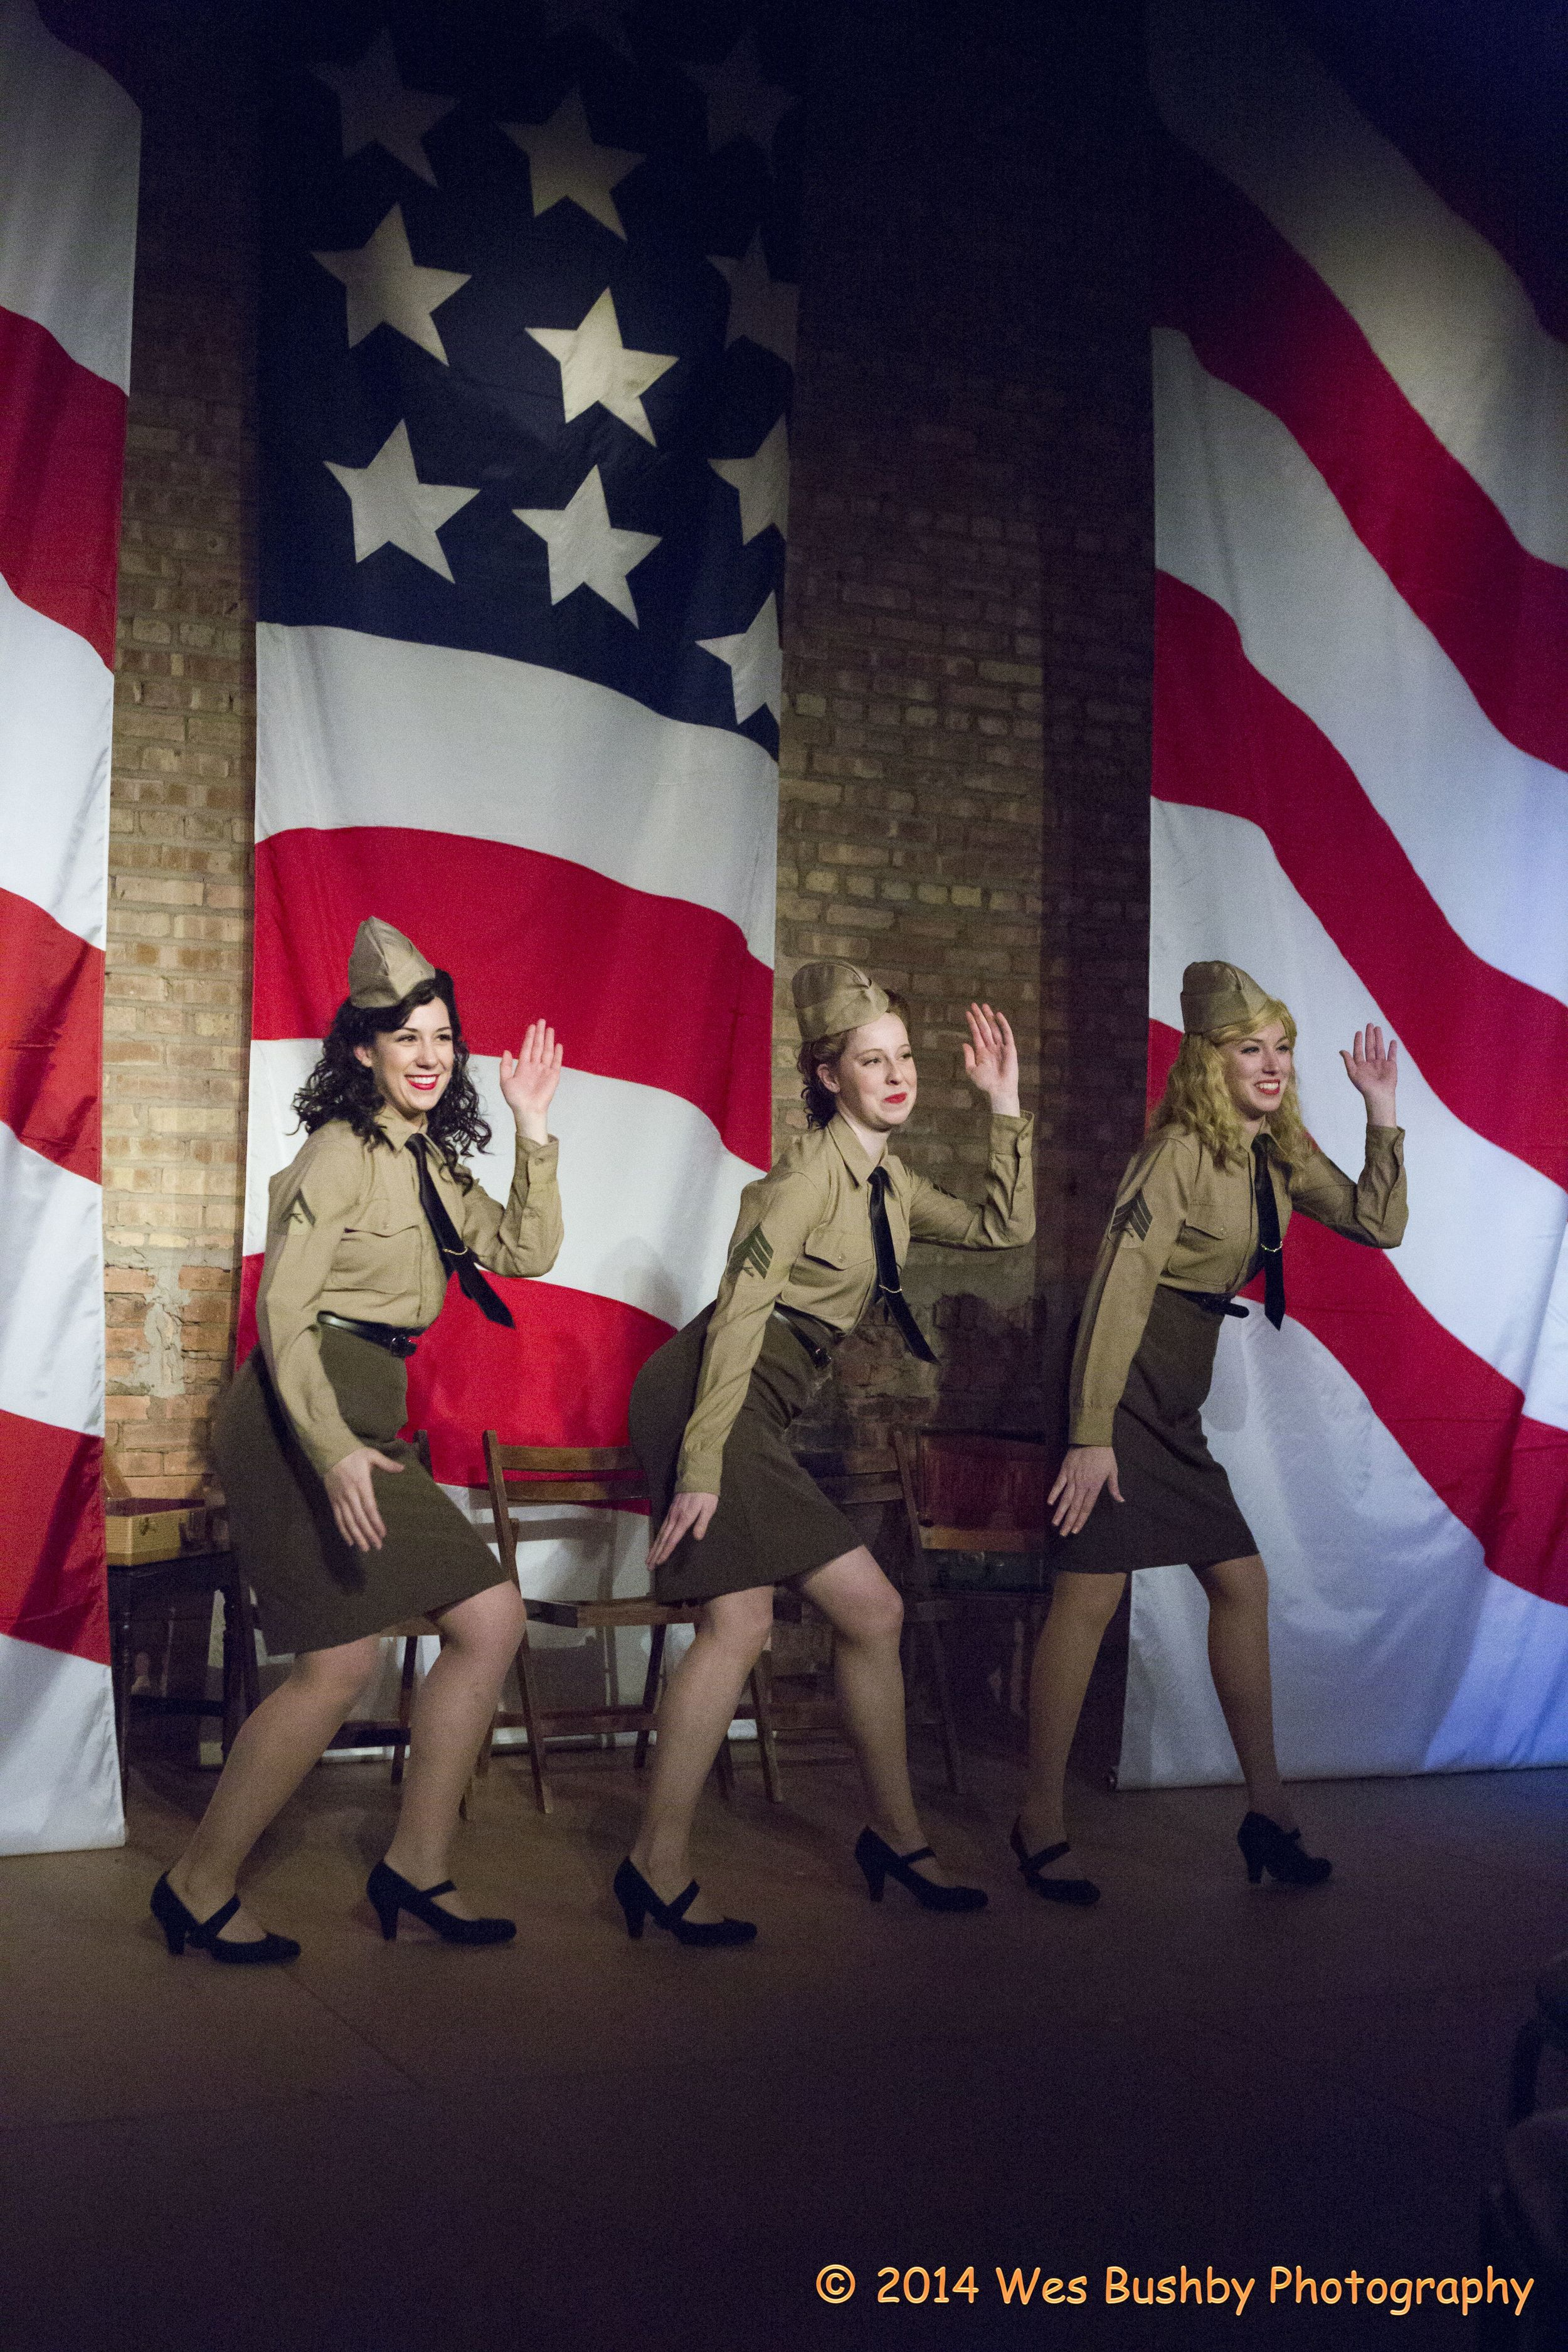 All American Sweethearts: A Salute to the Andrews Sisters